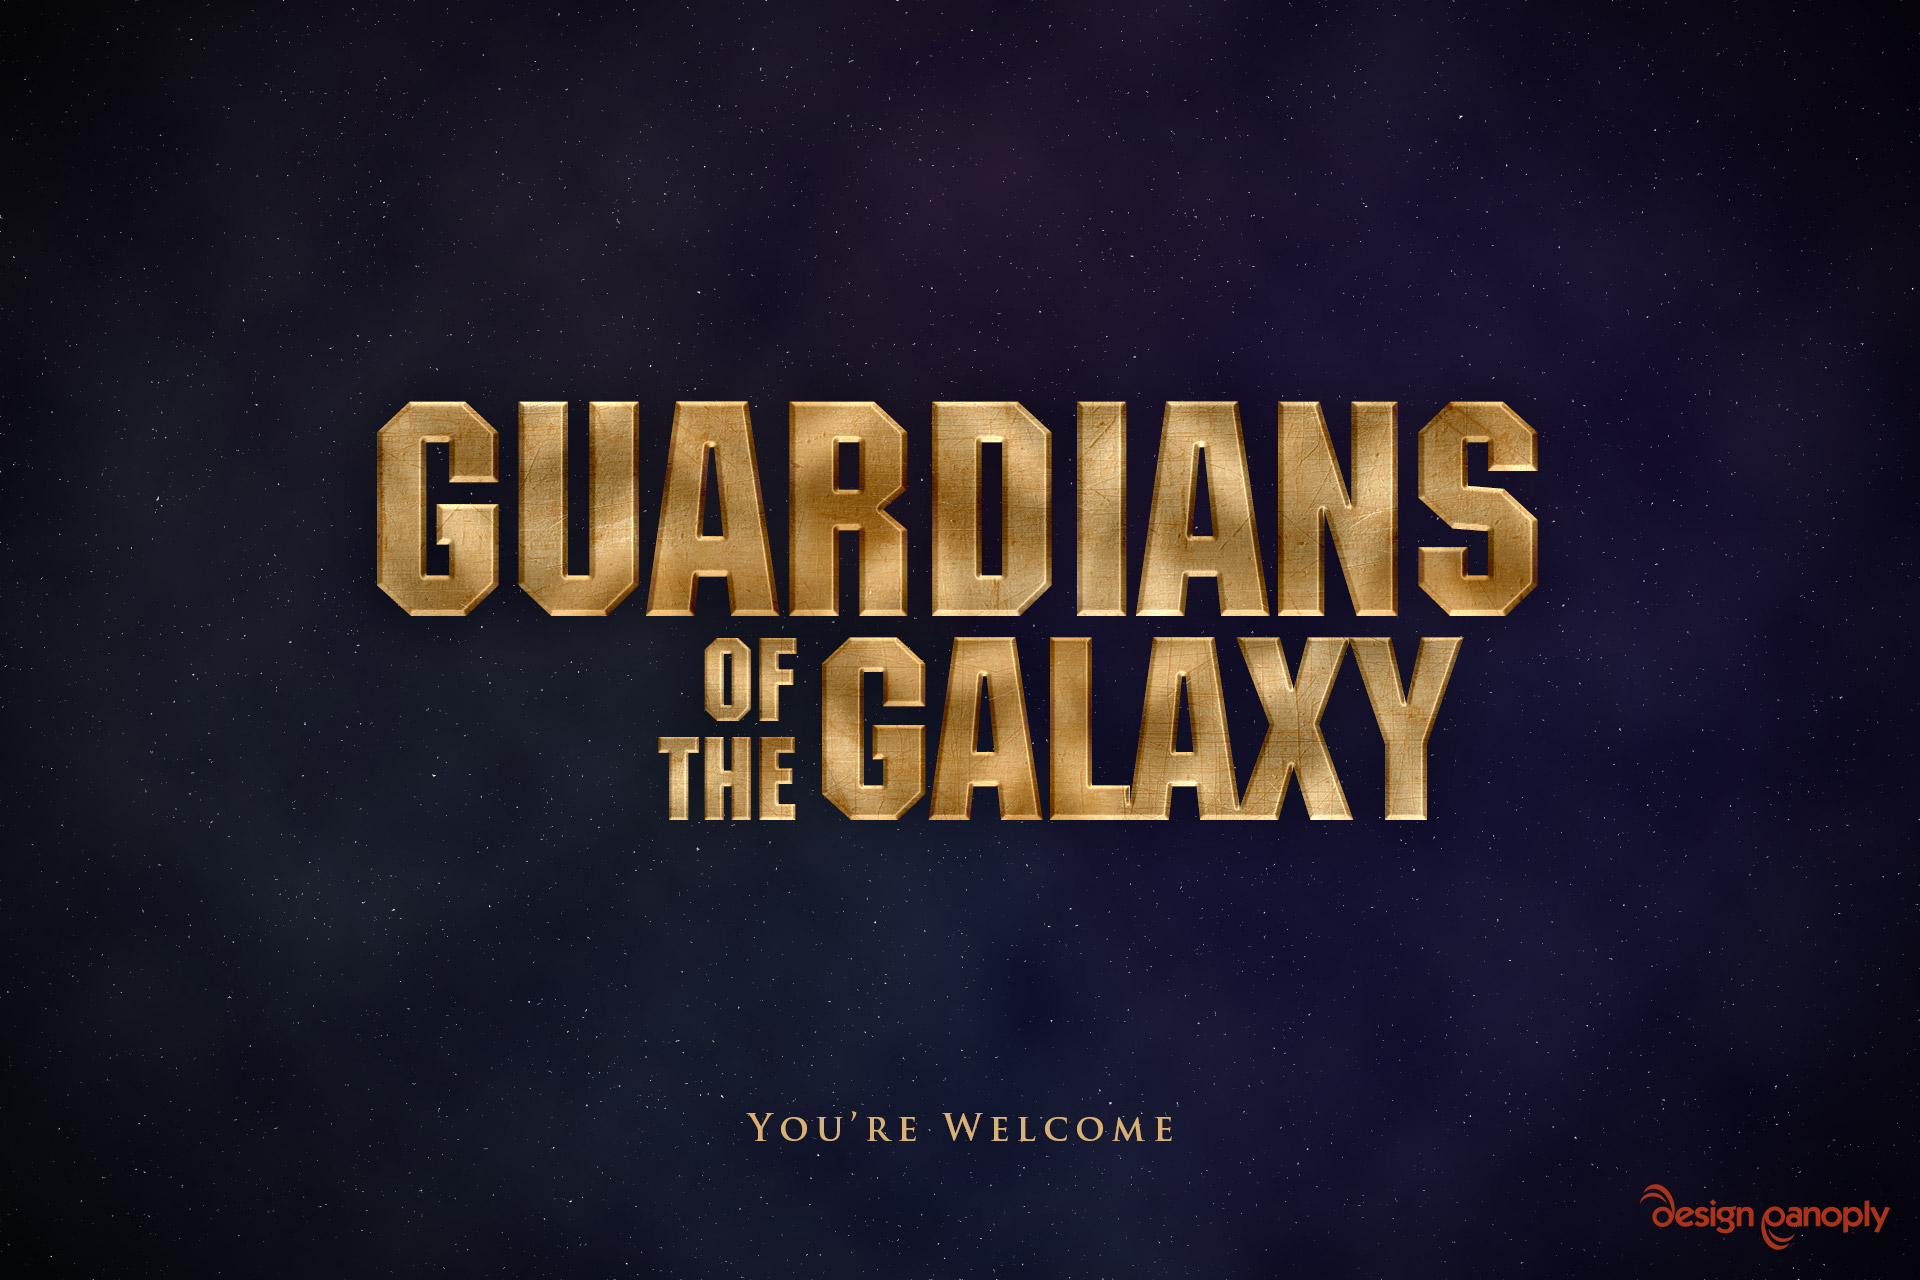 Guardians of the galaxy text effect in photoshop design panoply final image baditri Image collections